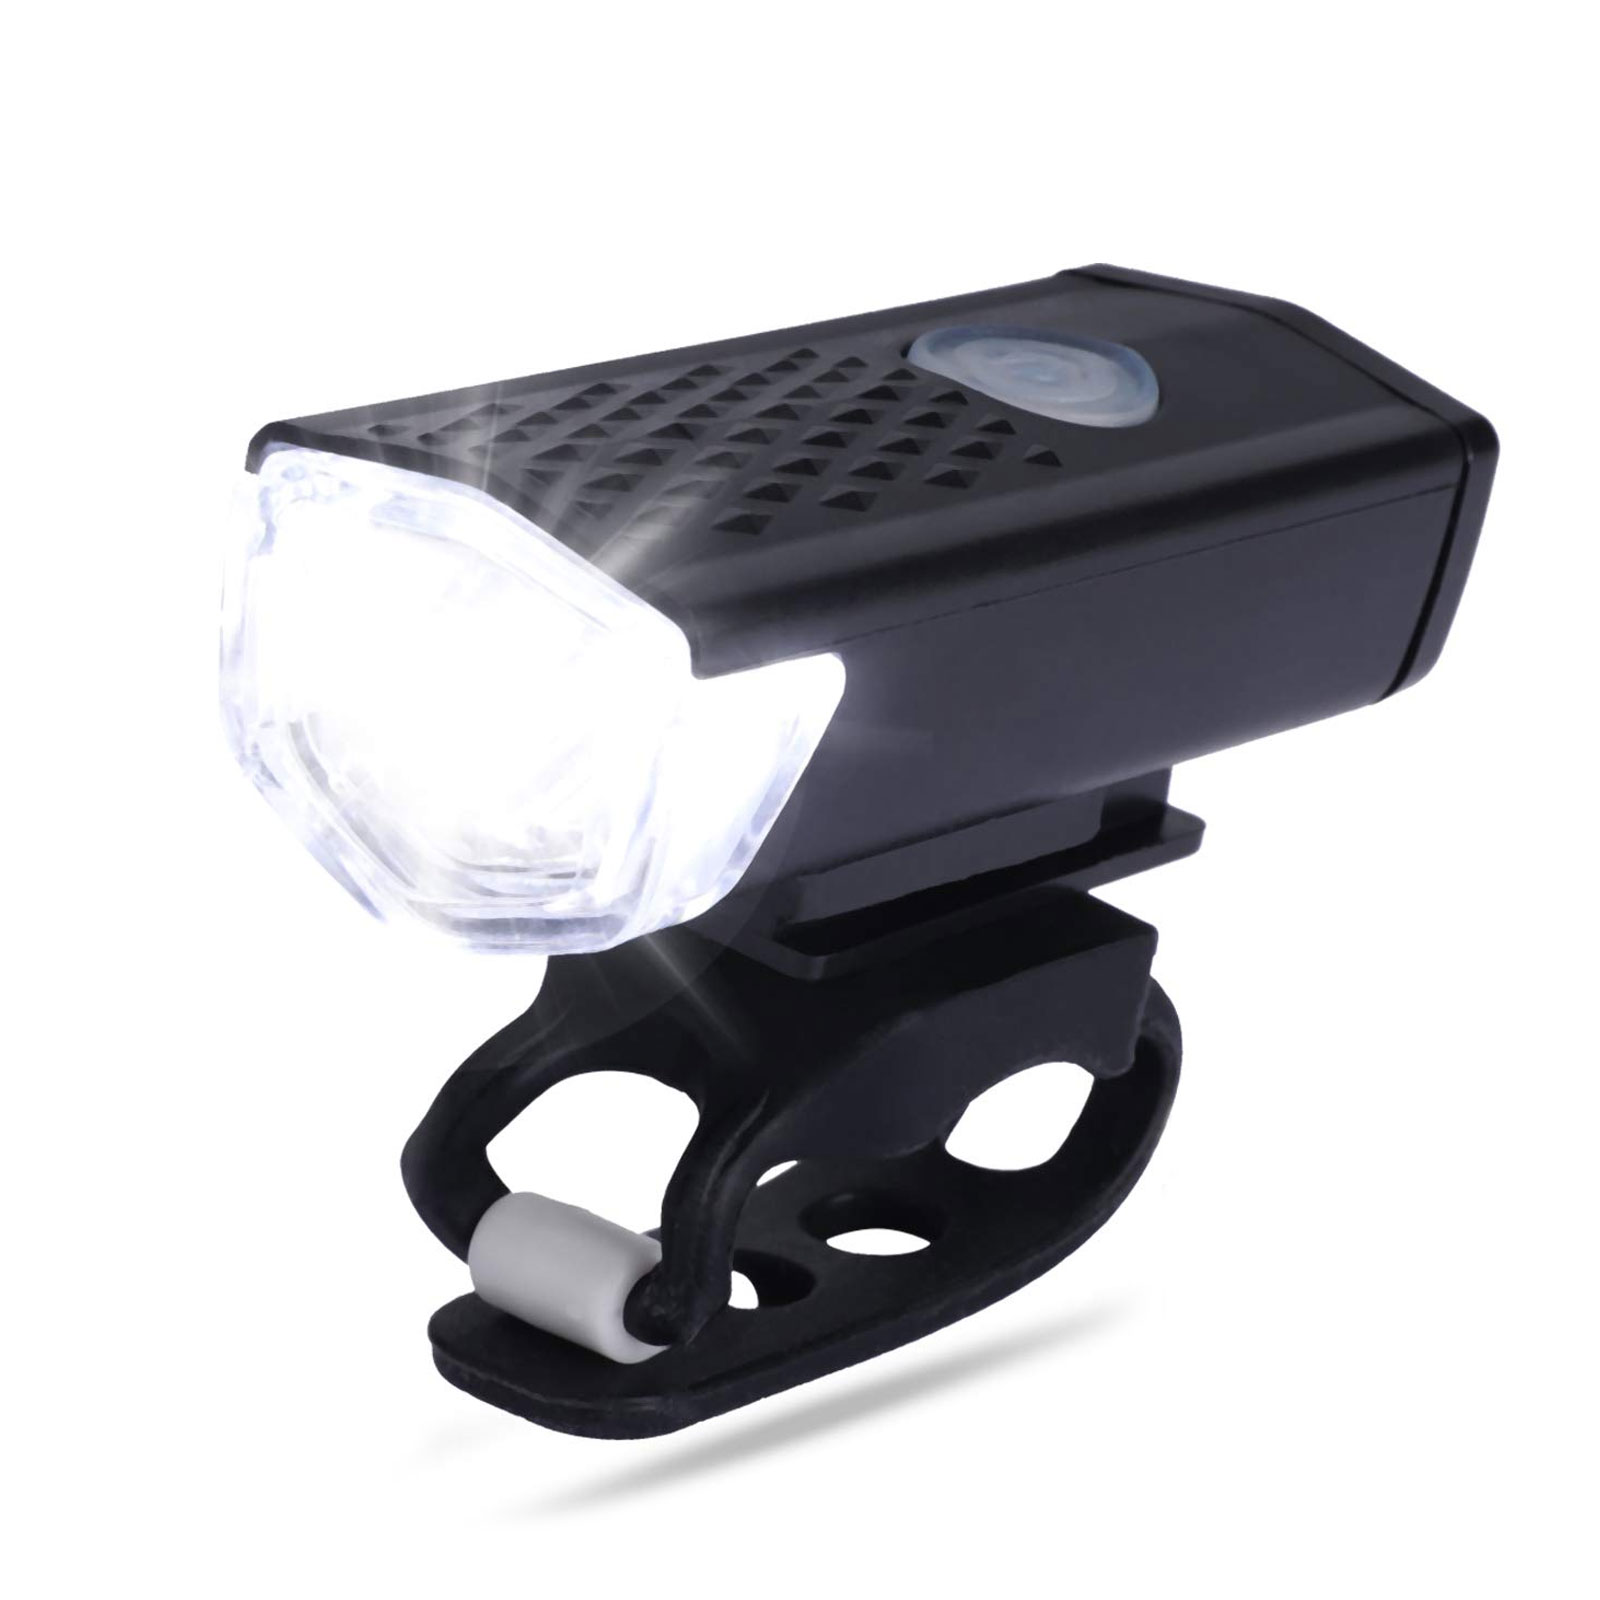 thumbnail 46 - LED-USB-Rechargeable-Bycicle-Light-Headlamp-Headlight-Bike-Front-Rear-Lamp-3Mode